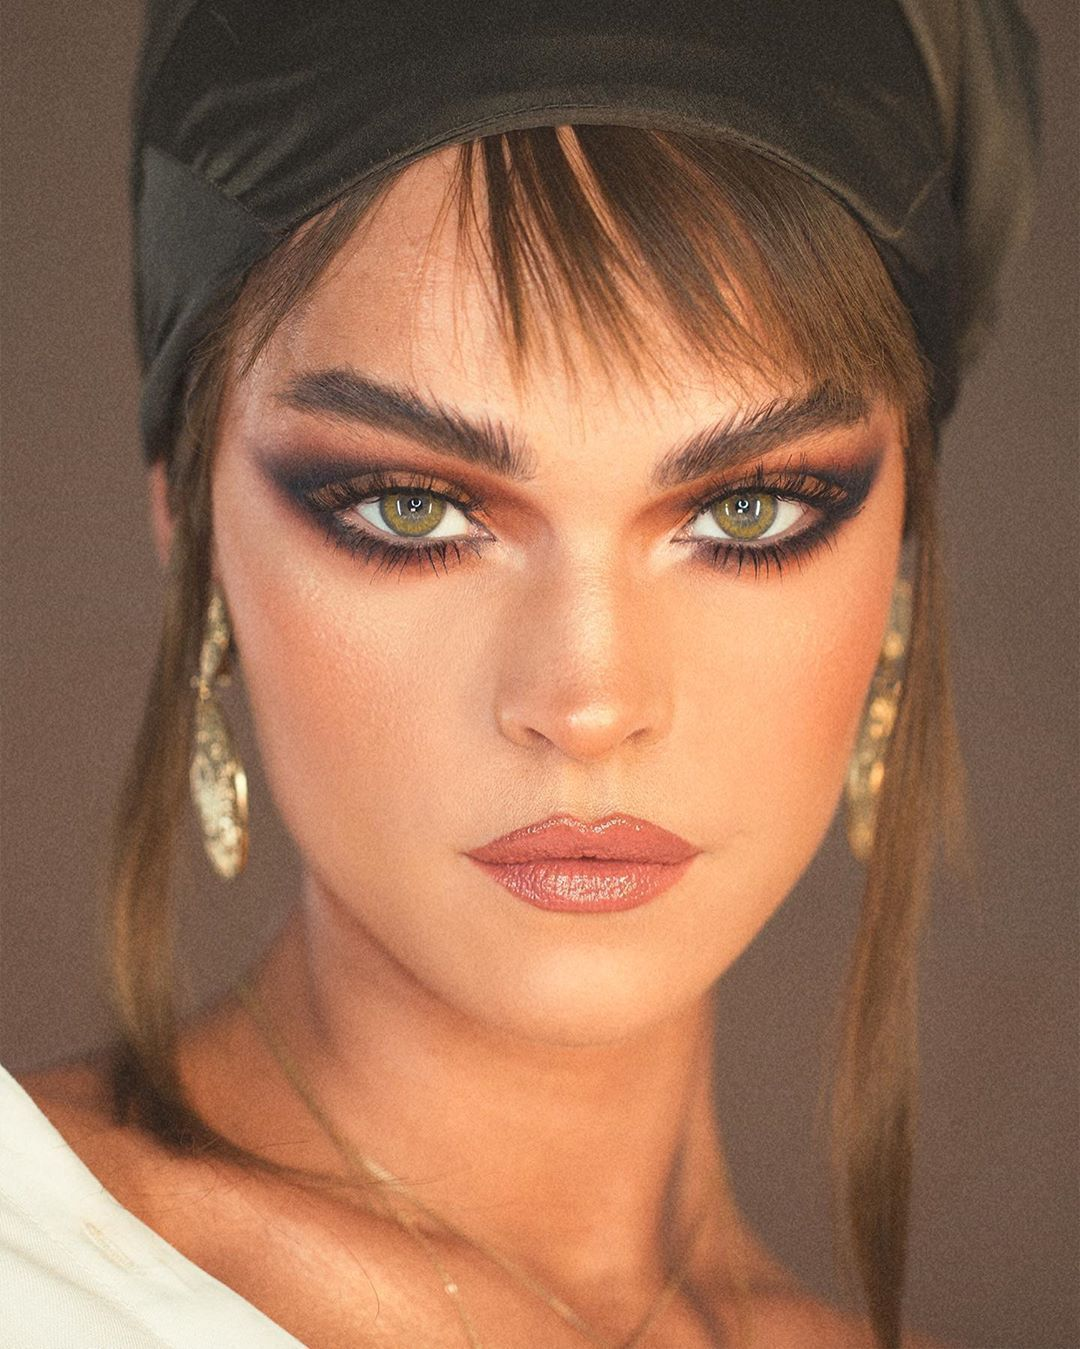 Pin by Ruth Foster on Makeup in 2020 Hair makeup